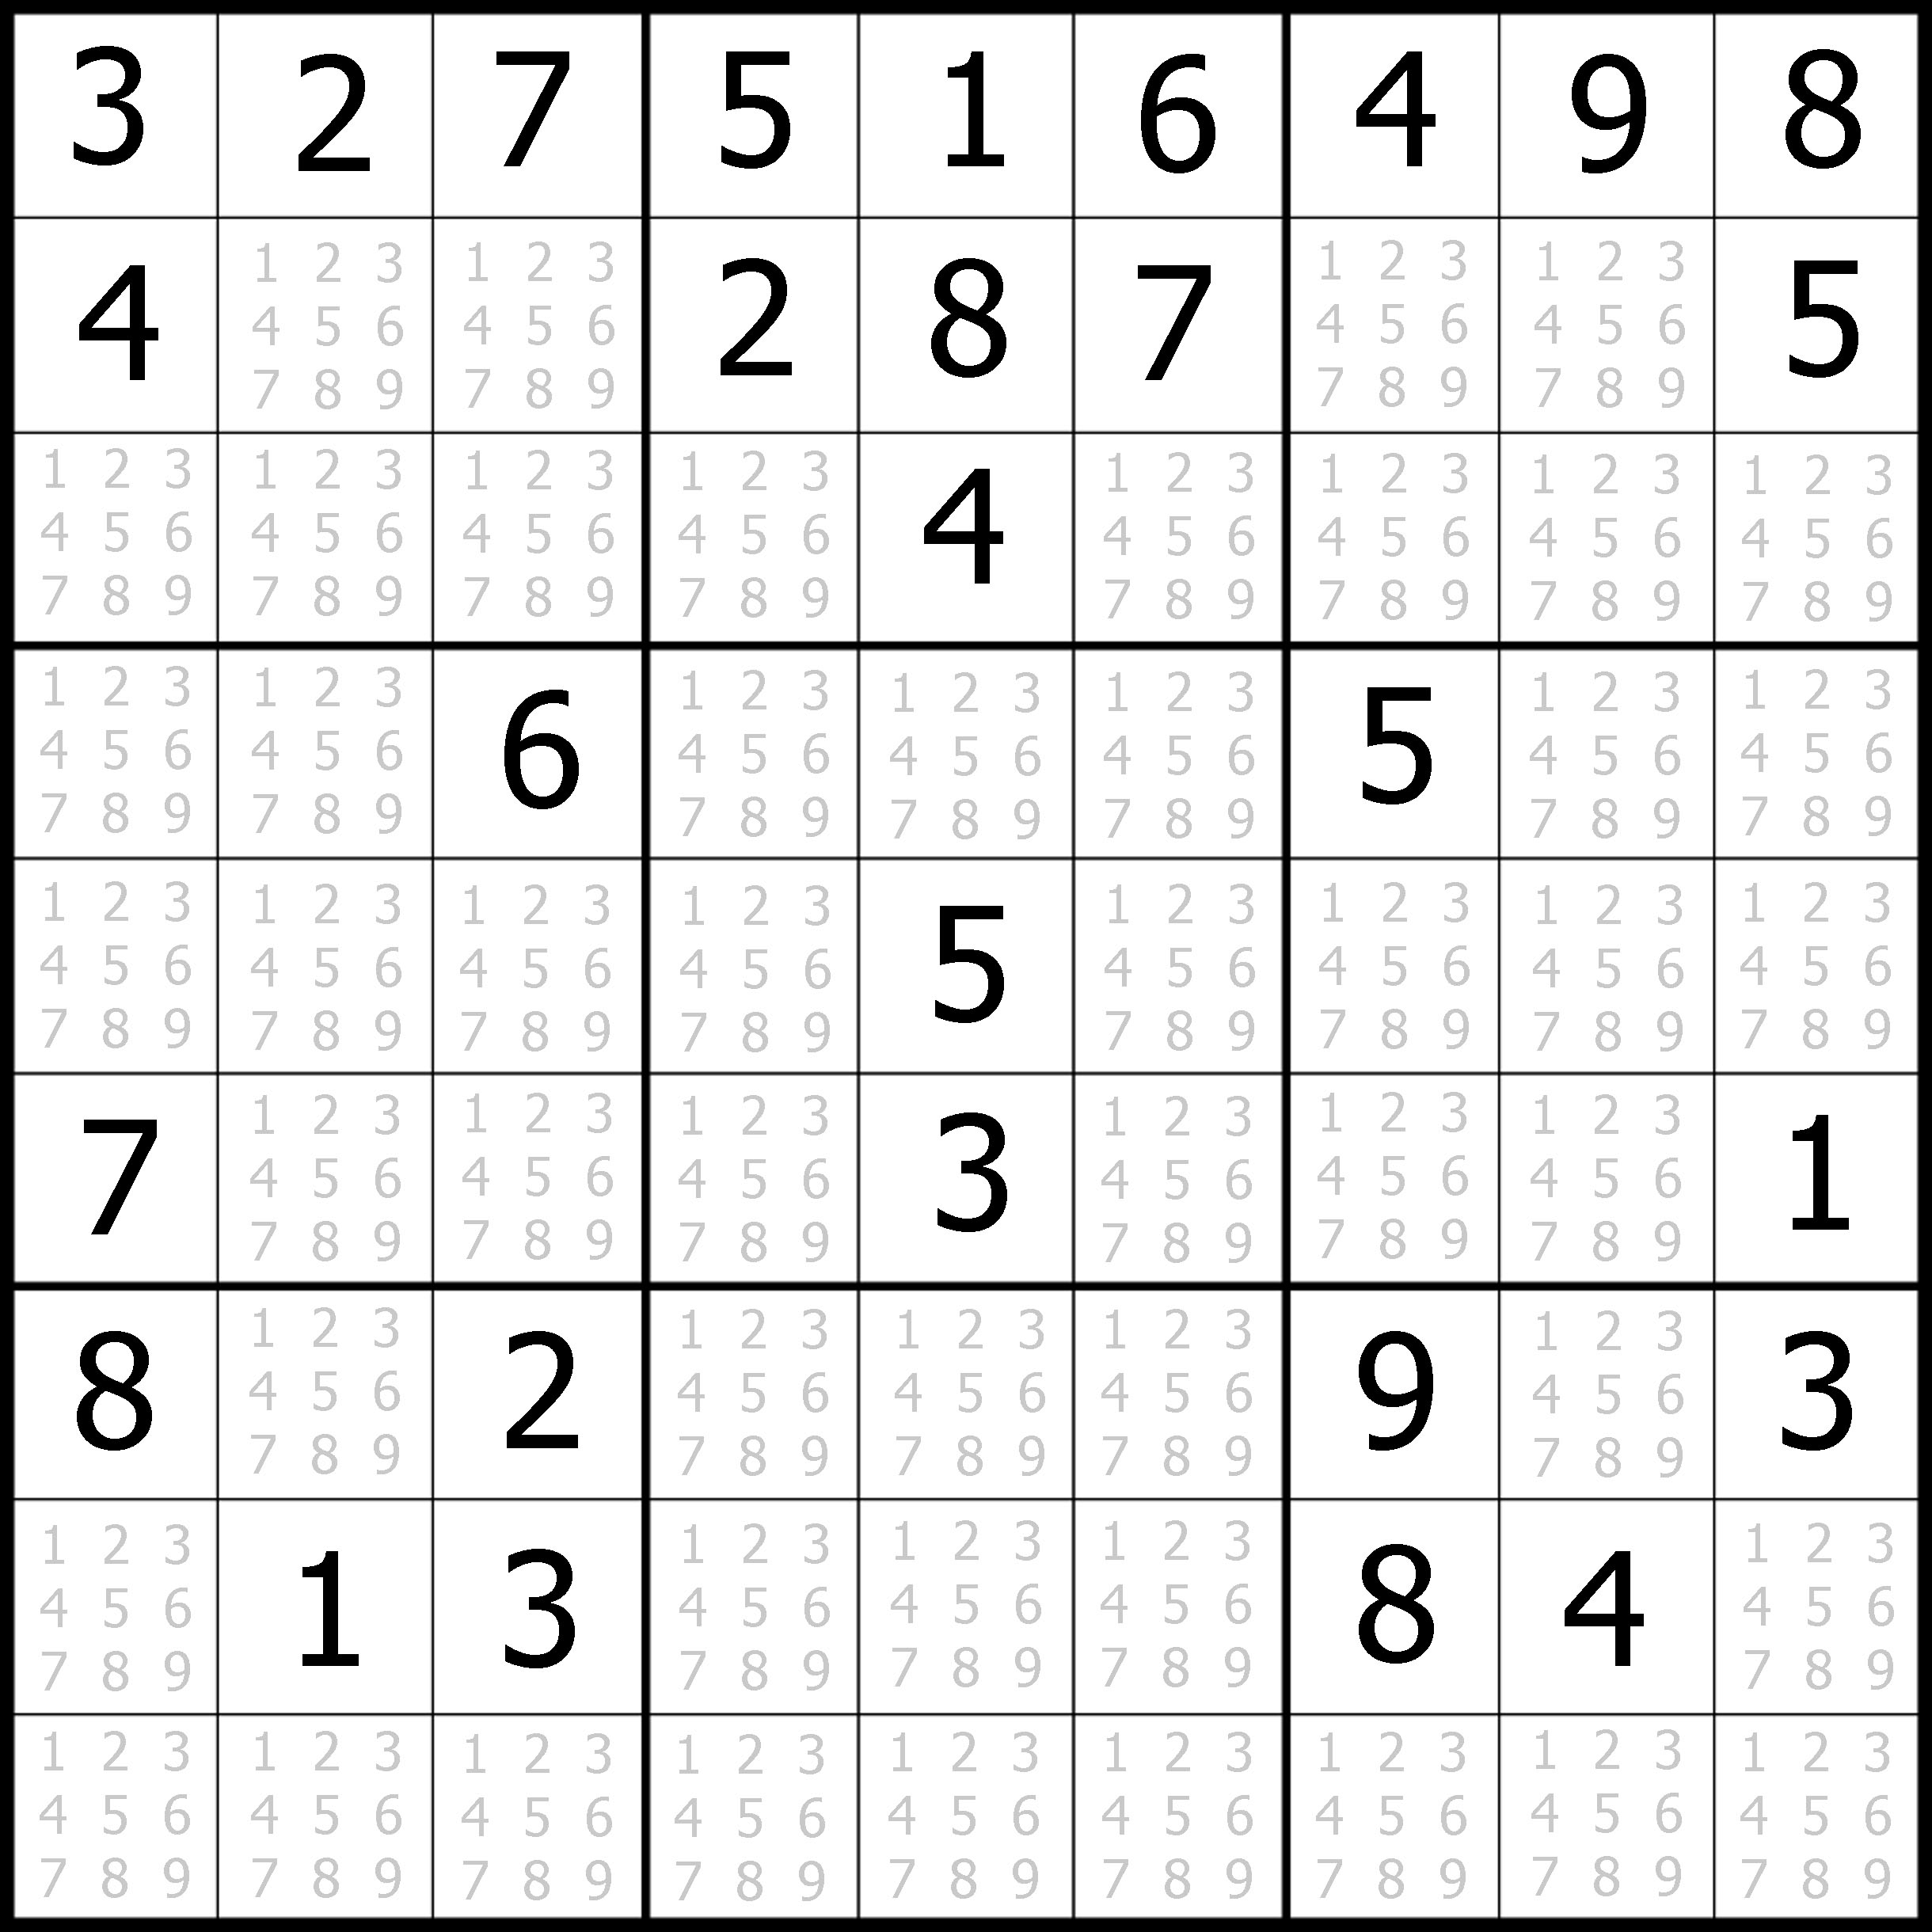 Sudoku Puzzler | Free, Printable, Updated Sudoku Puzzles With A - Printable Sudoku Puzzles Easy #6